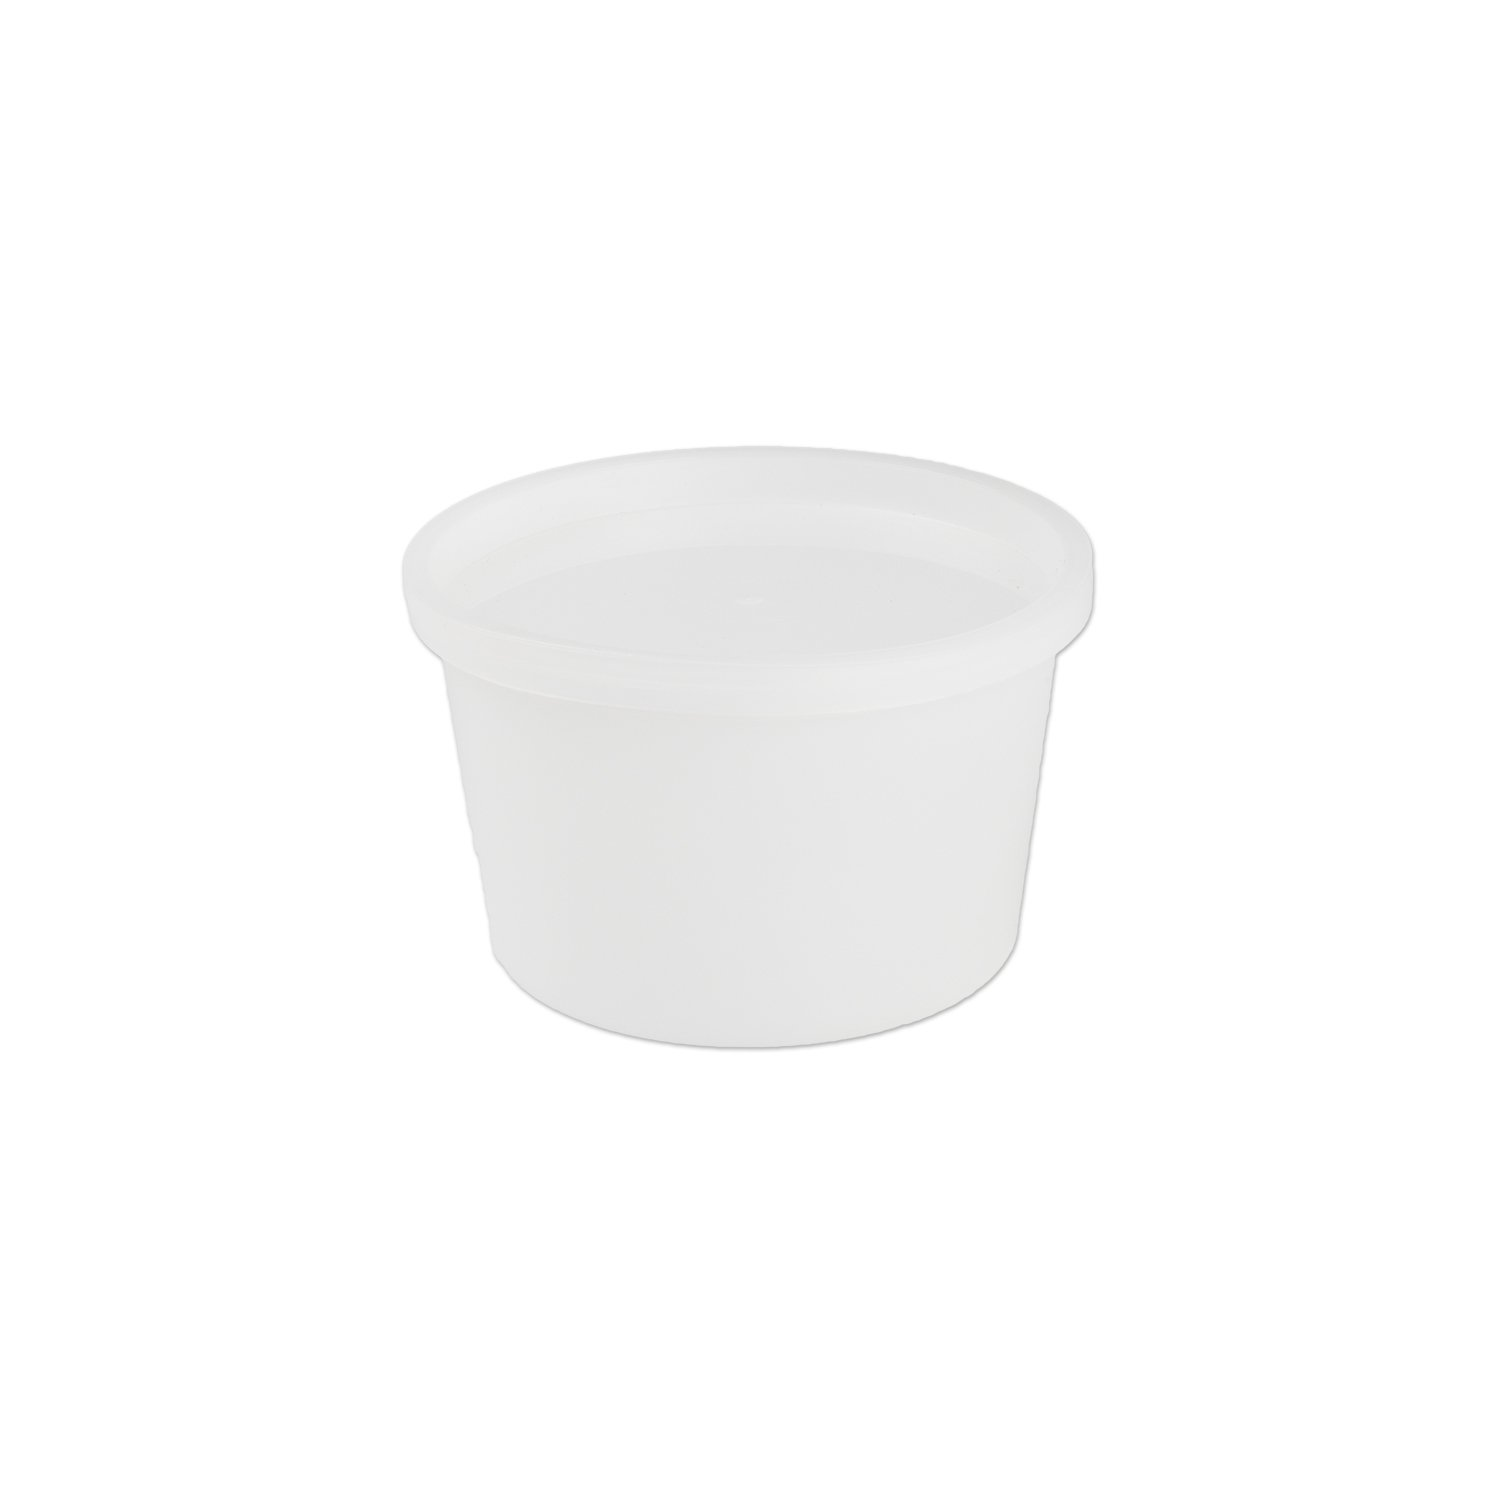 Medegen 02732 All-Purpose Laboratory Container with Snap on Lid, Non-Sterile, 16 oz. Capacity, Translucent (Pack of 100) by Medegen (Image #1)